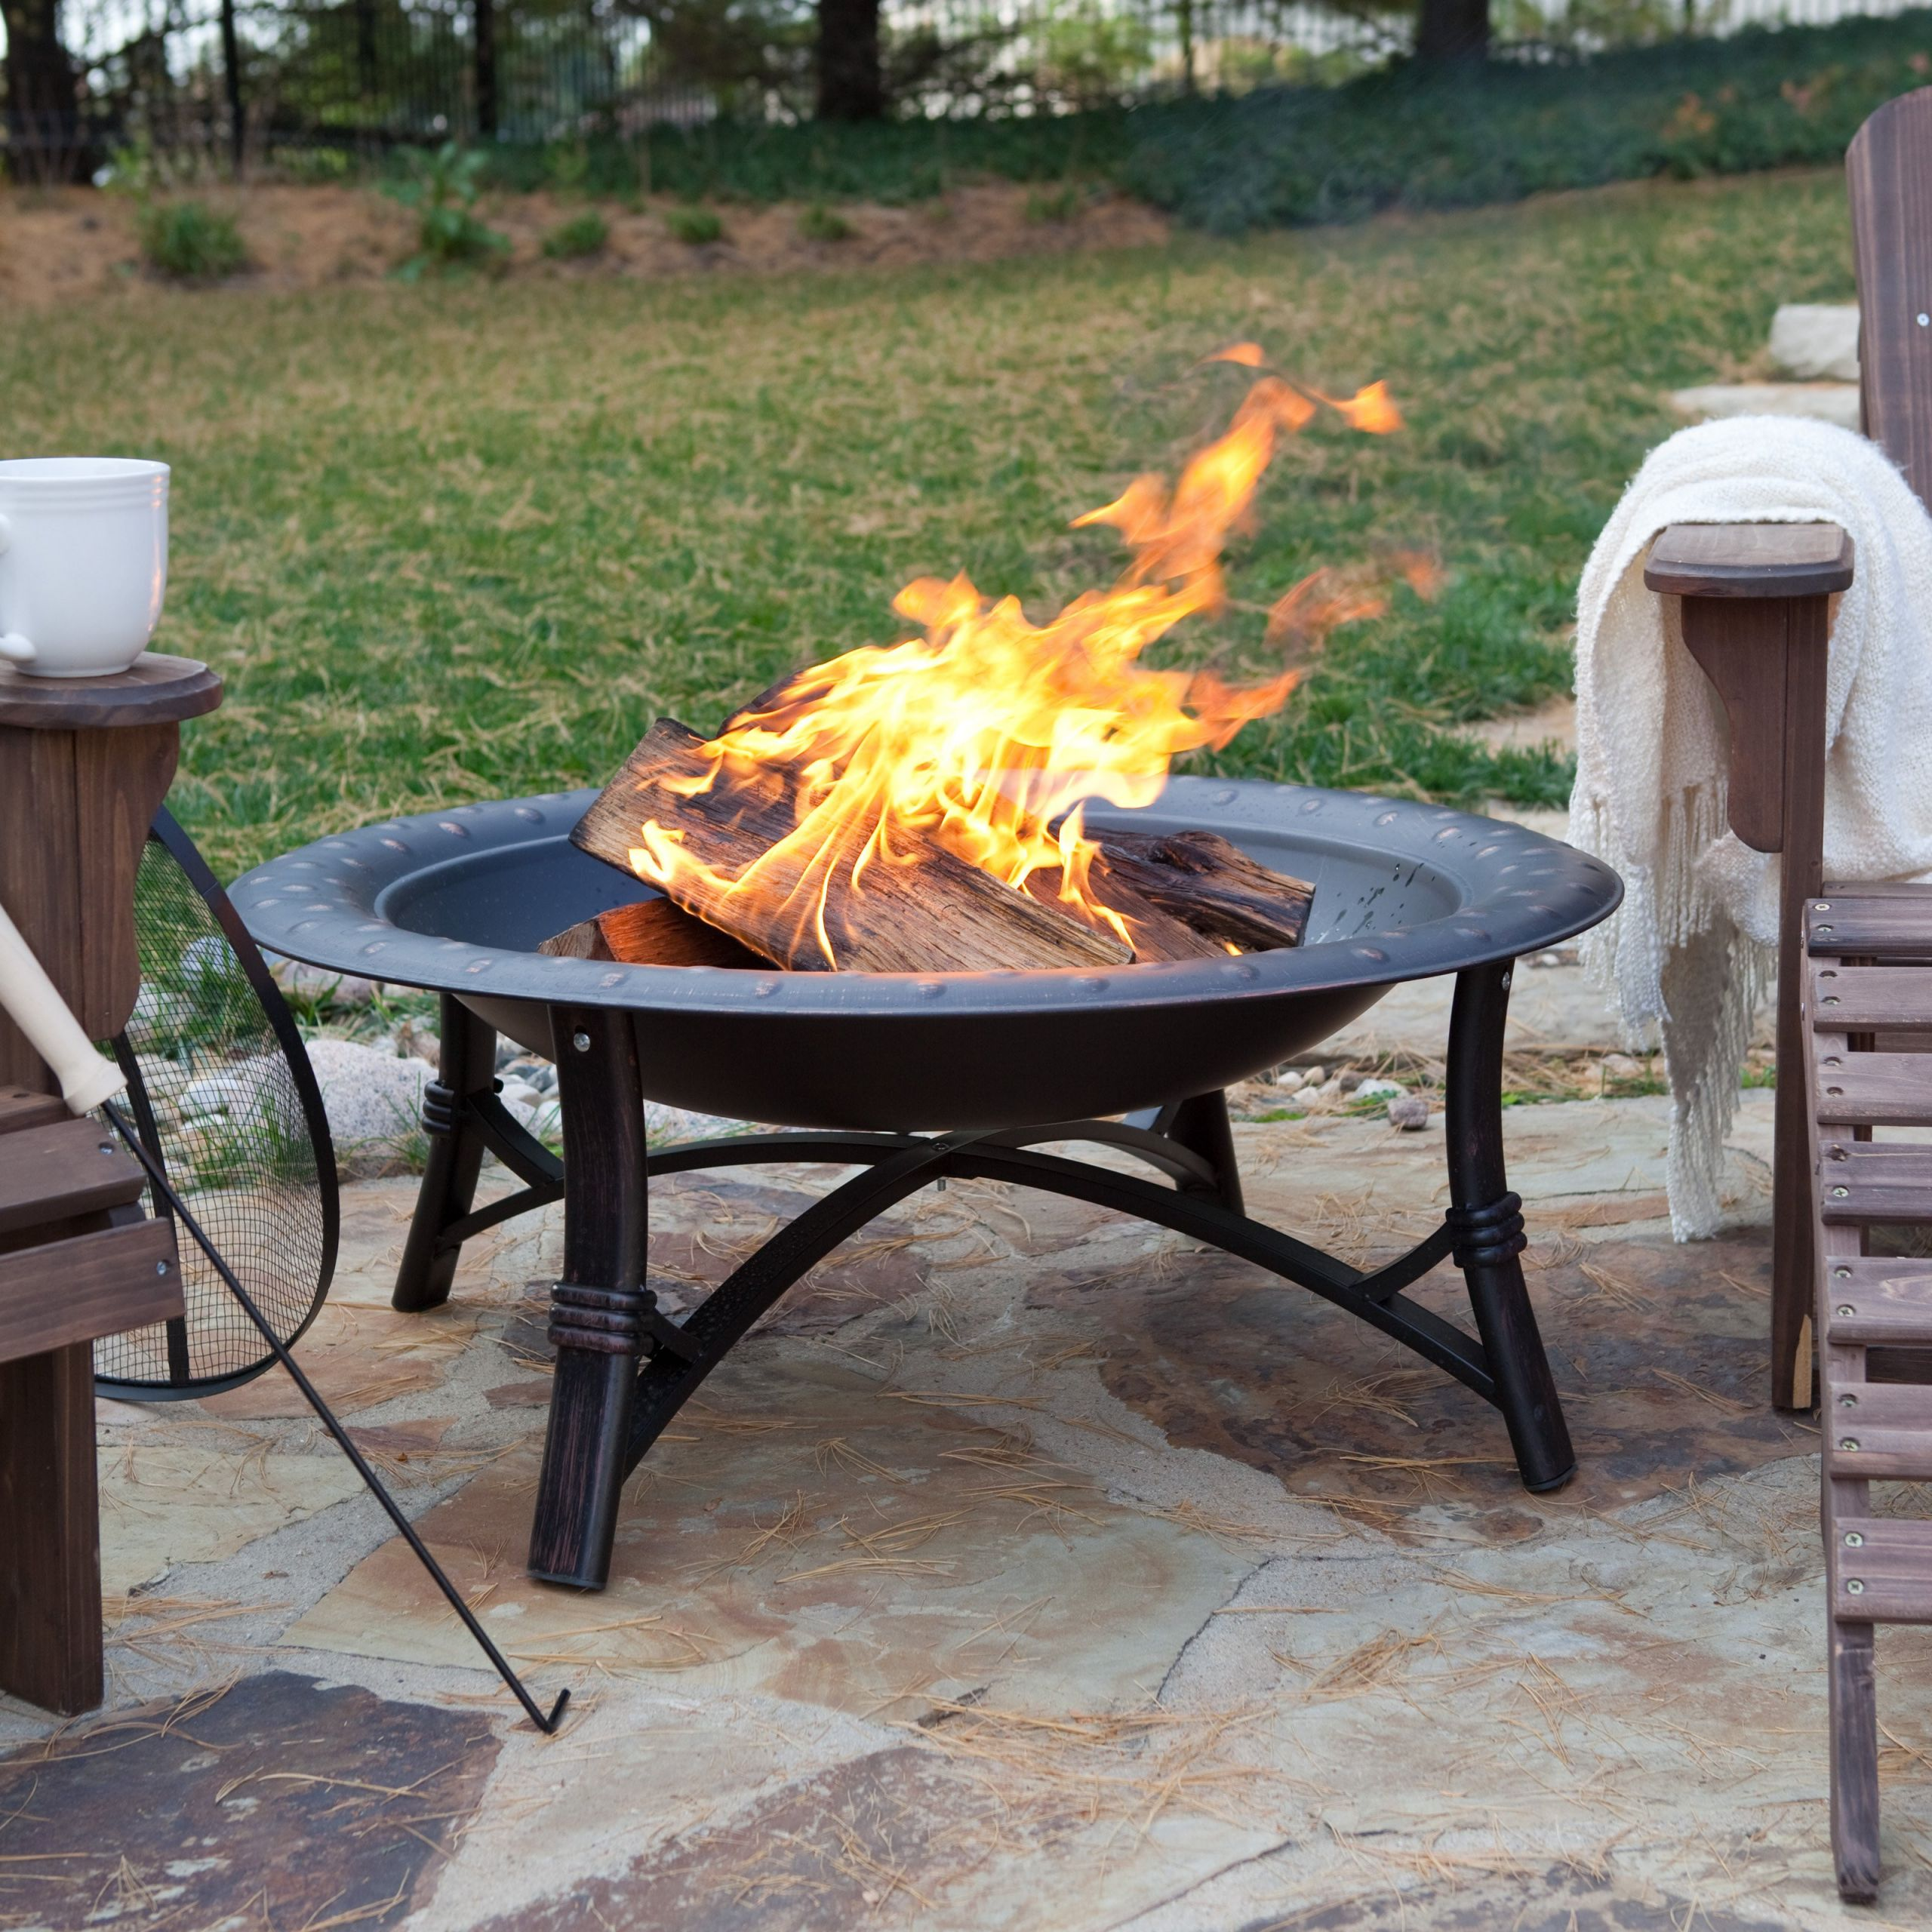 Fireplace Fire Pit  Fire Sense 35 in Roman Fire Pit Fire Pits at Hayneedle